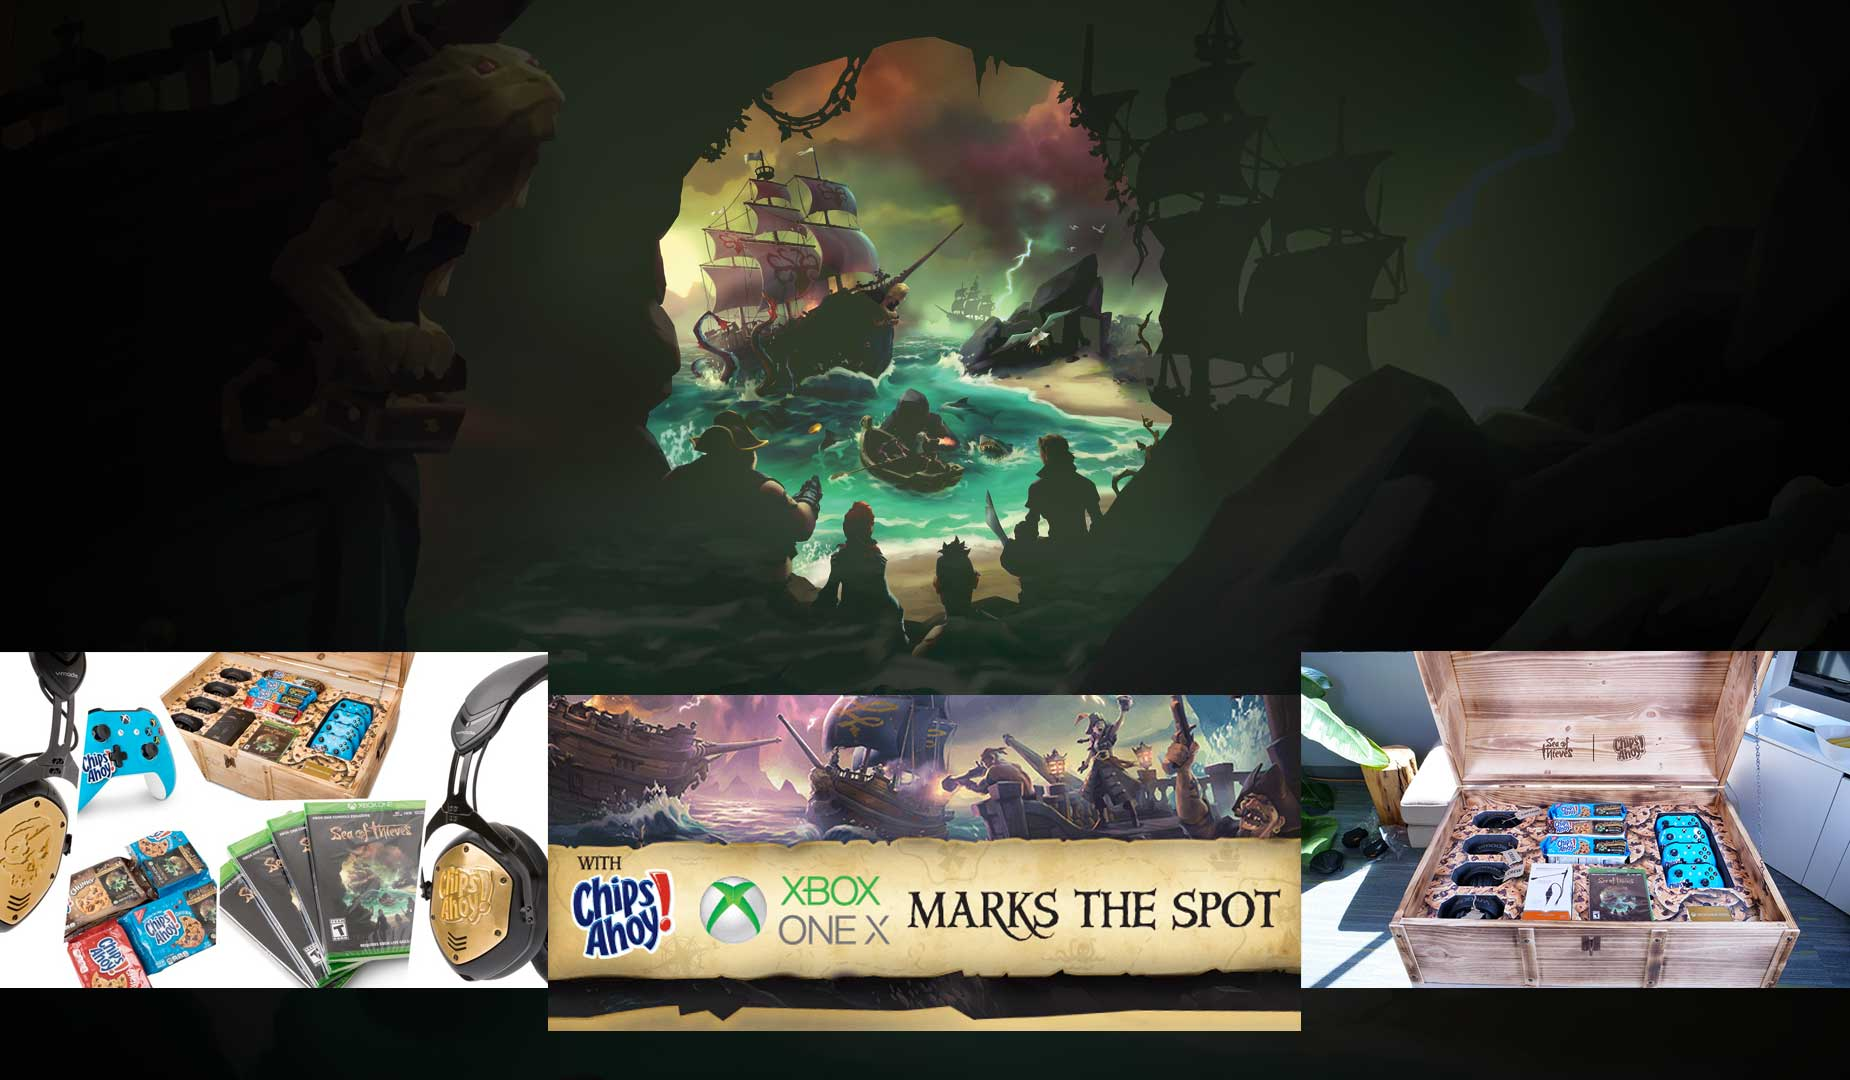 XBOX Chips Ahoy Sea of Thieves Campaign